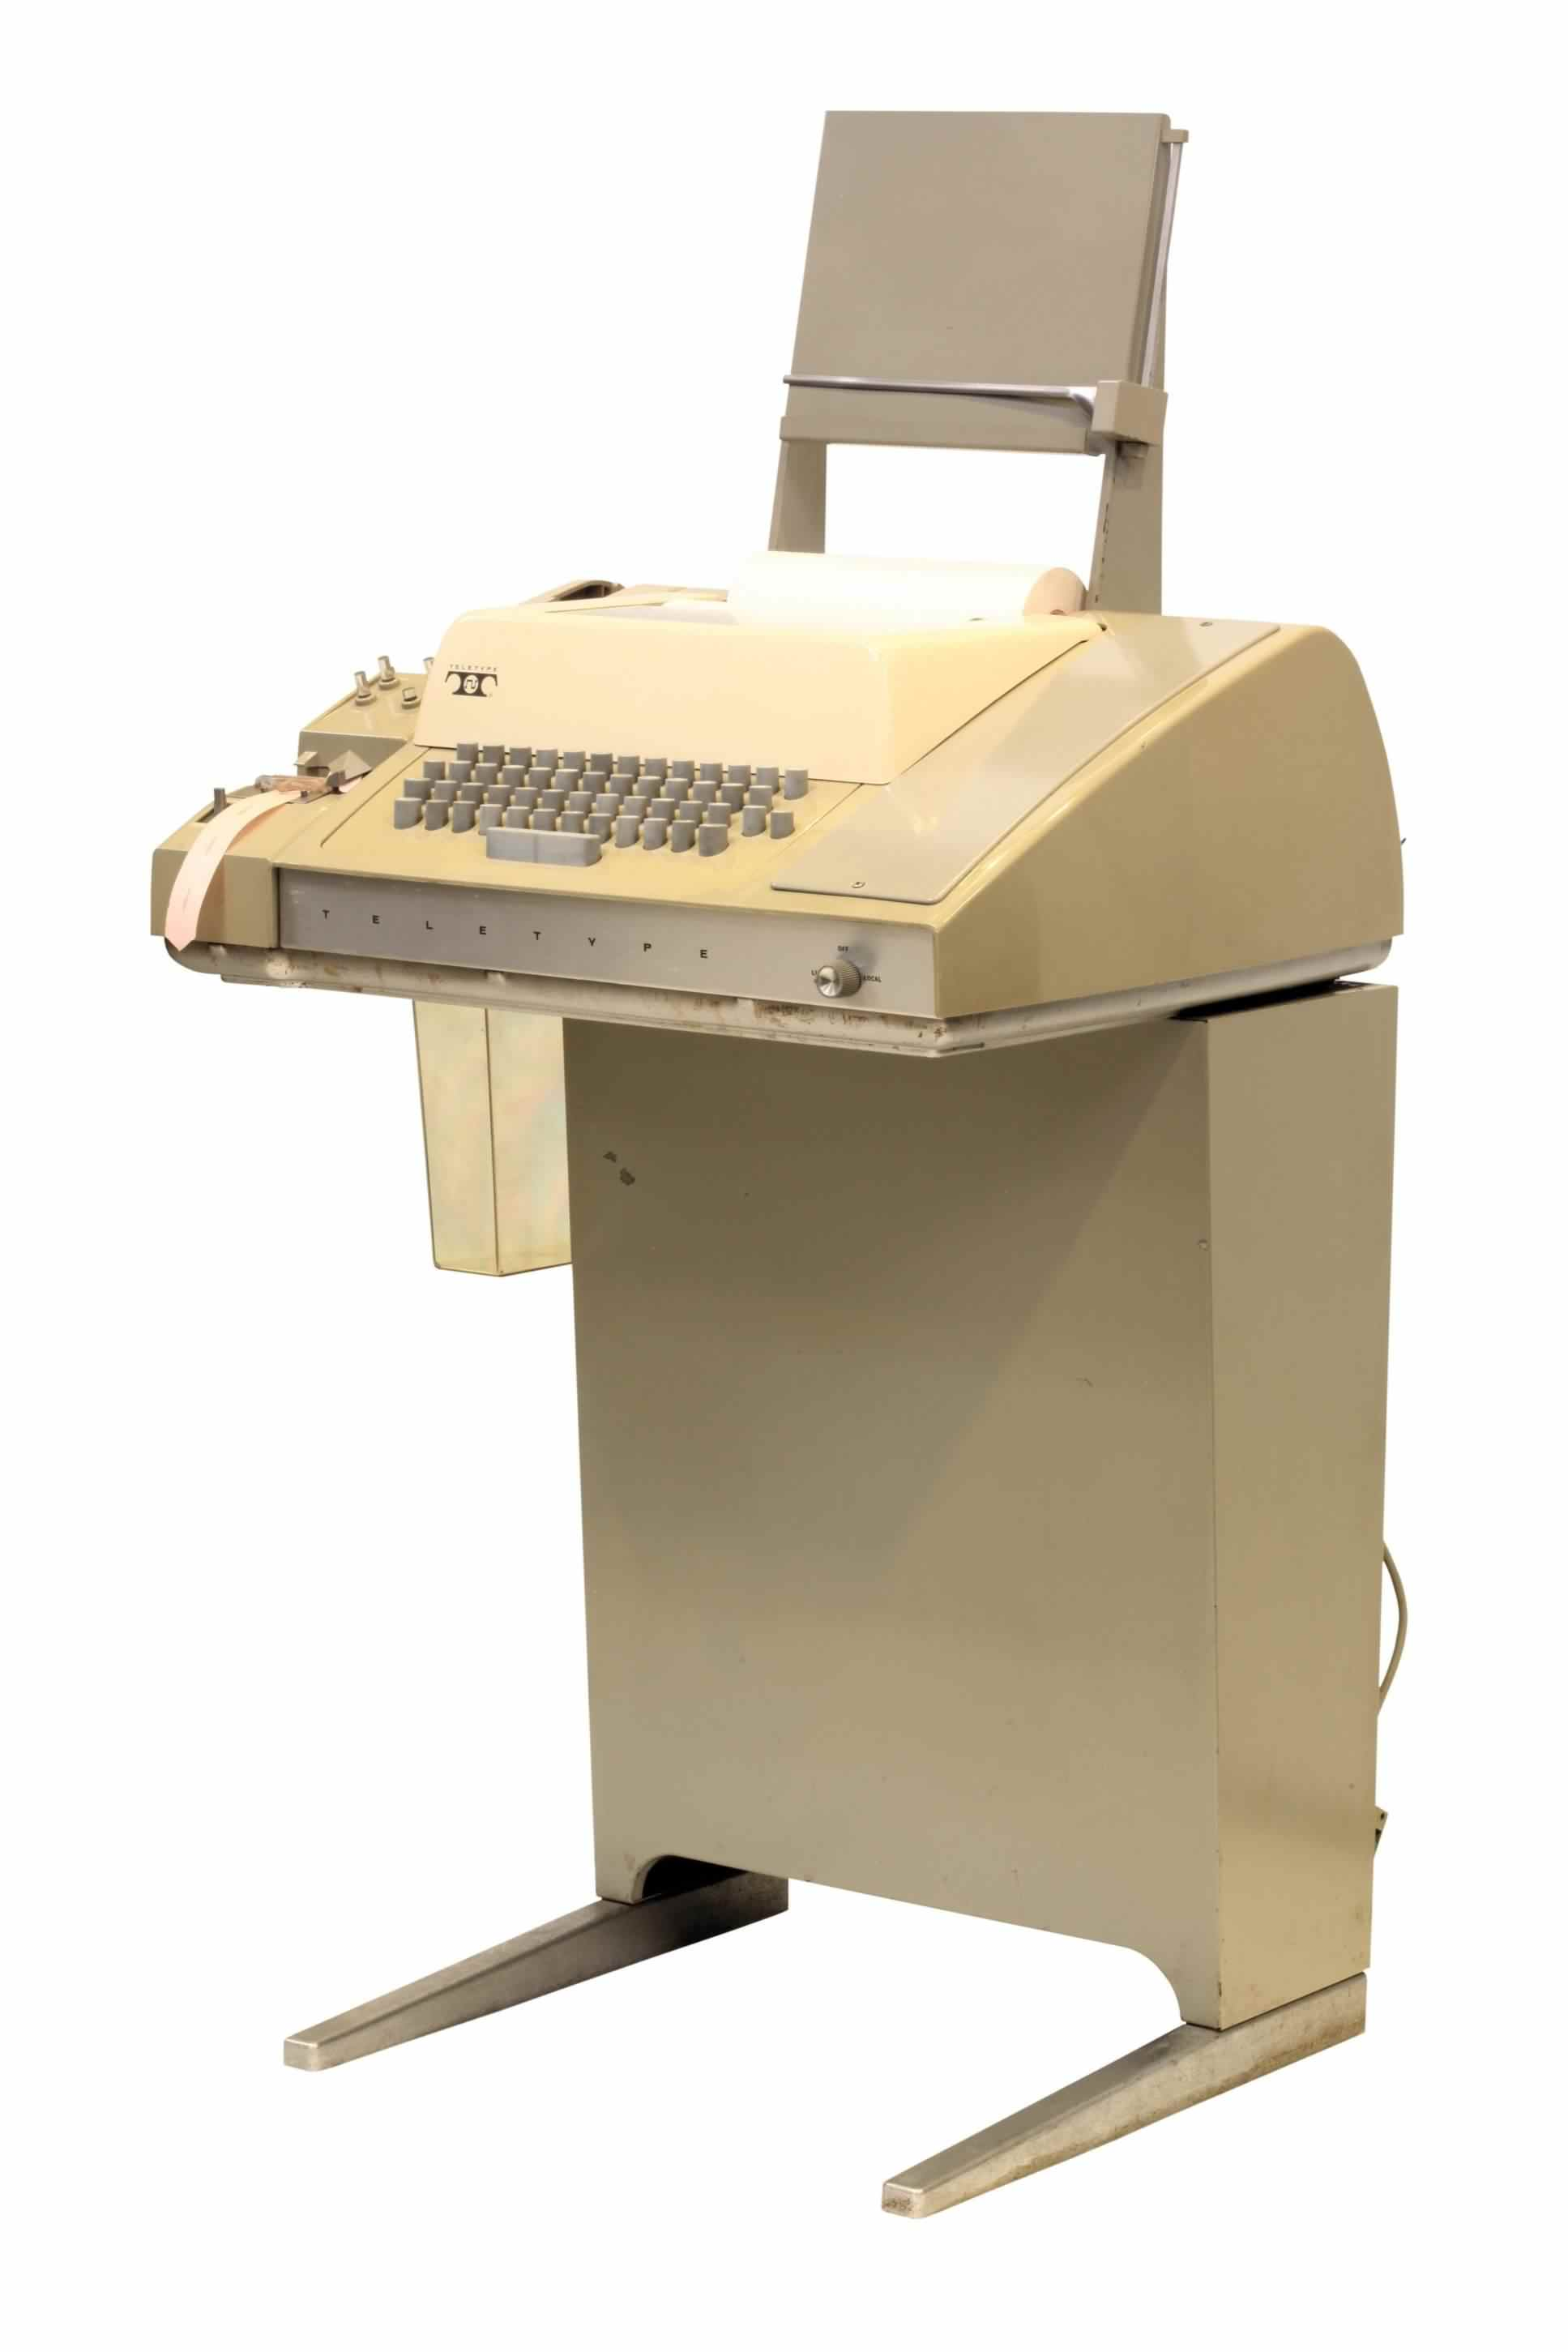 Teletype Corporation model 33, click for a larger image, photo licensed for reuse CCASA2.0